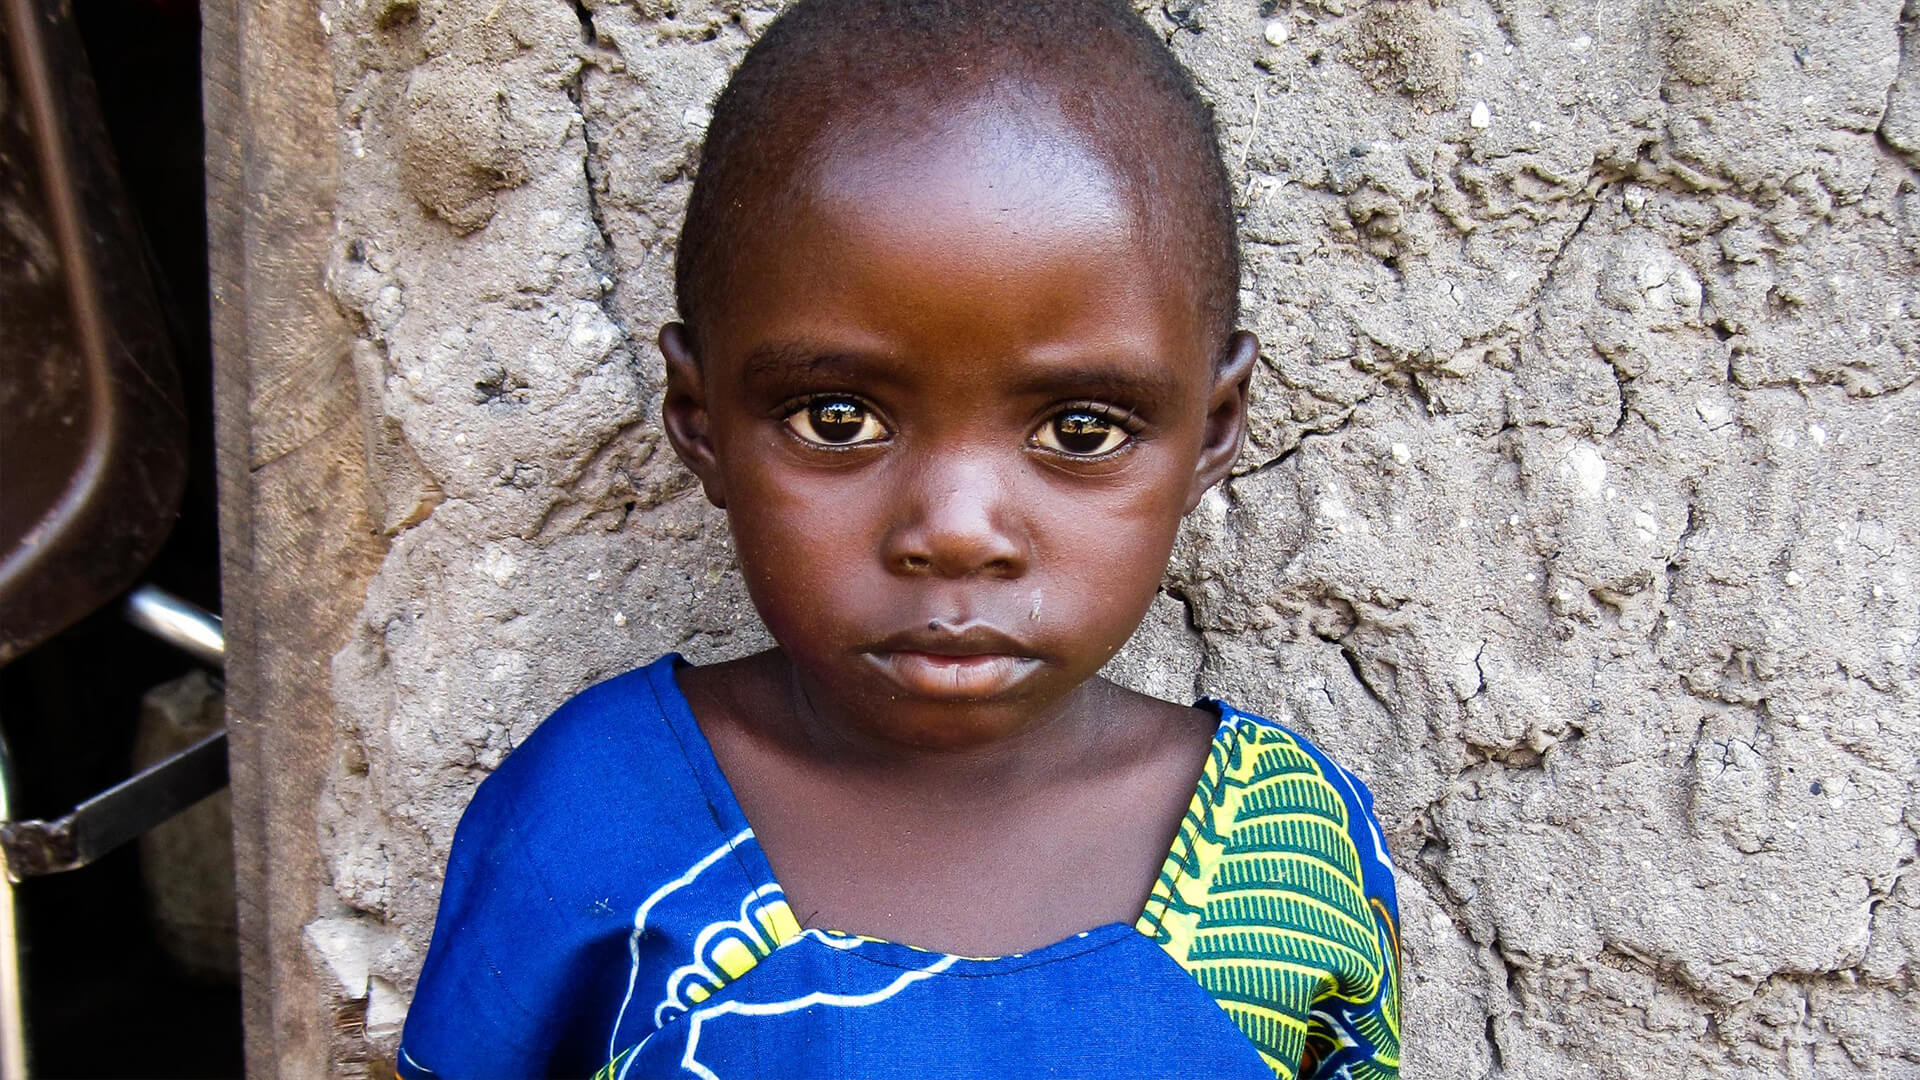 child malnutrition in africa Malnutrition, child deaths plague india's tribal people india's indigenous children are more likely to die or suffer from malnutrition than those from other communities.